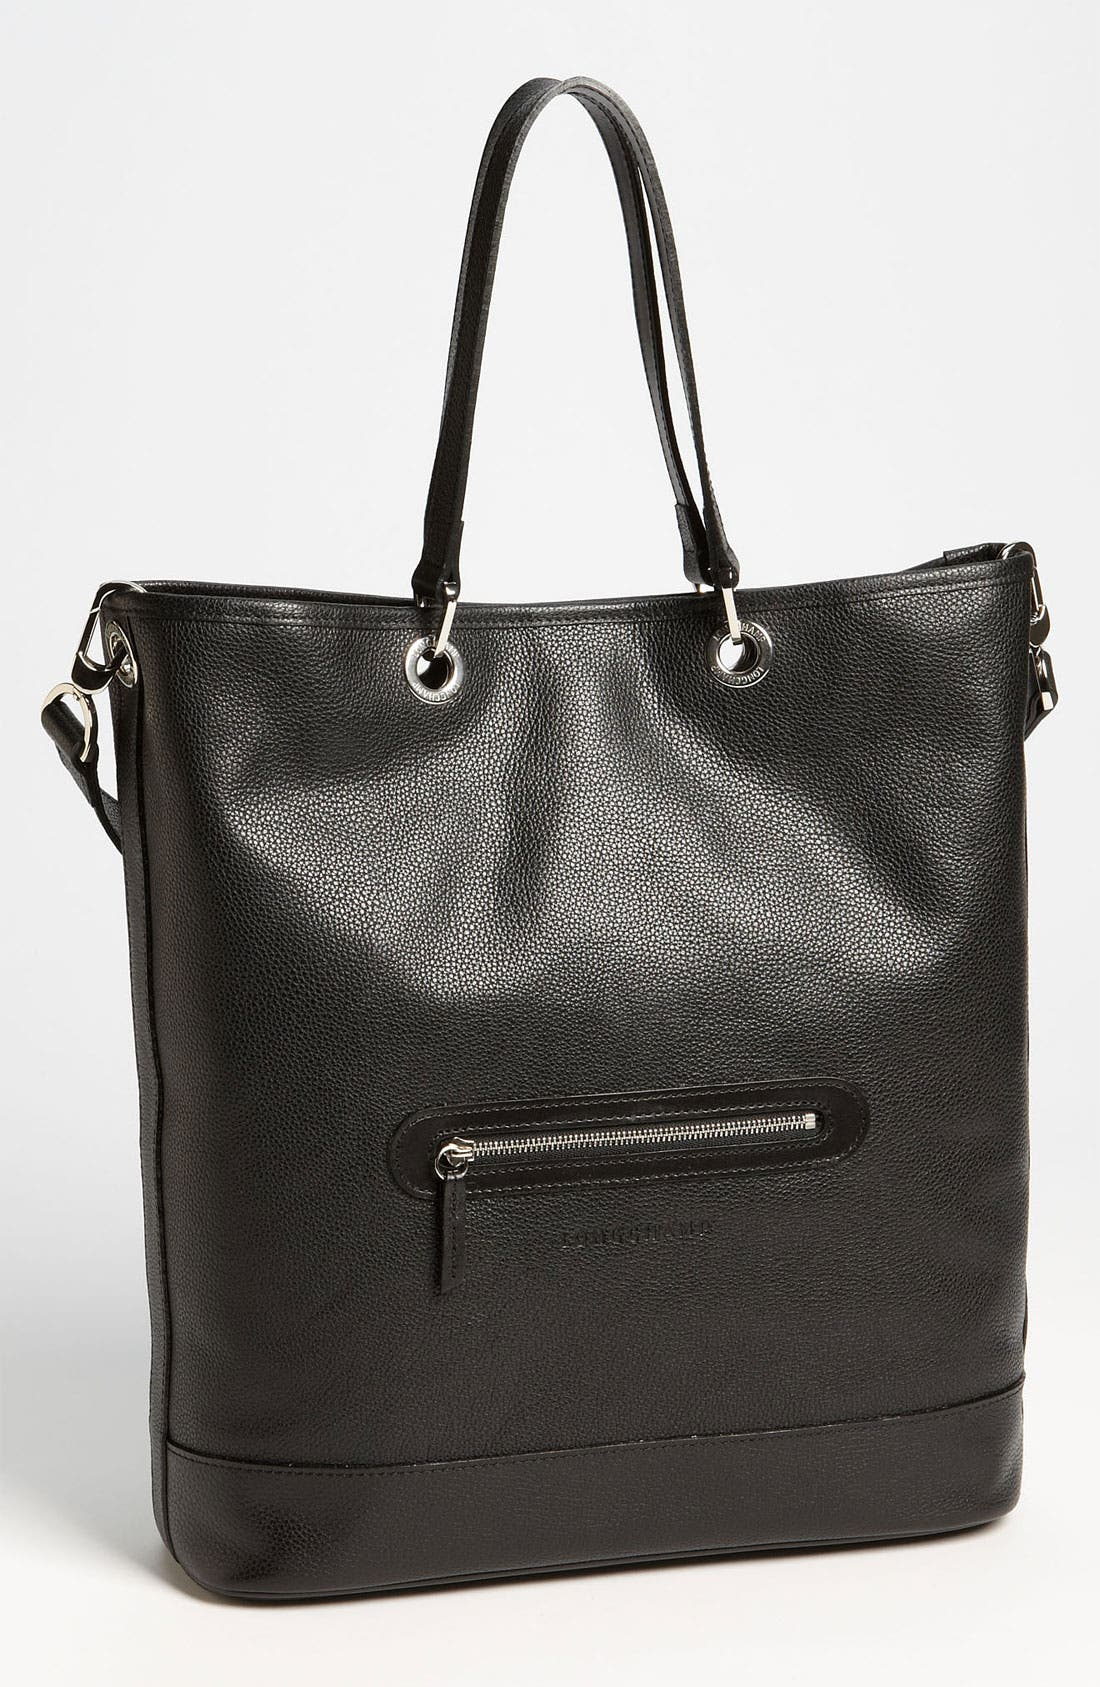 Alternate Image 1 Selected - Longchamp 'Veau Fouloneé' Leather Tote